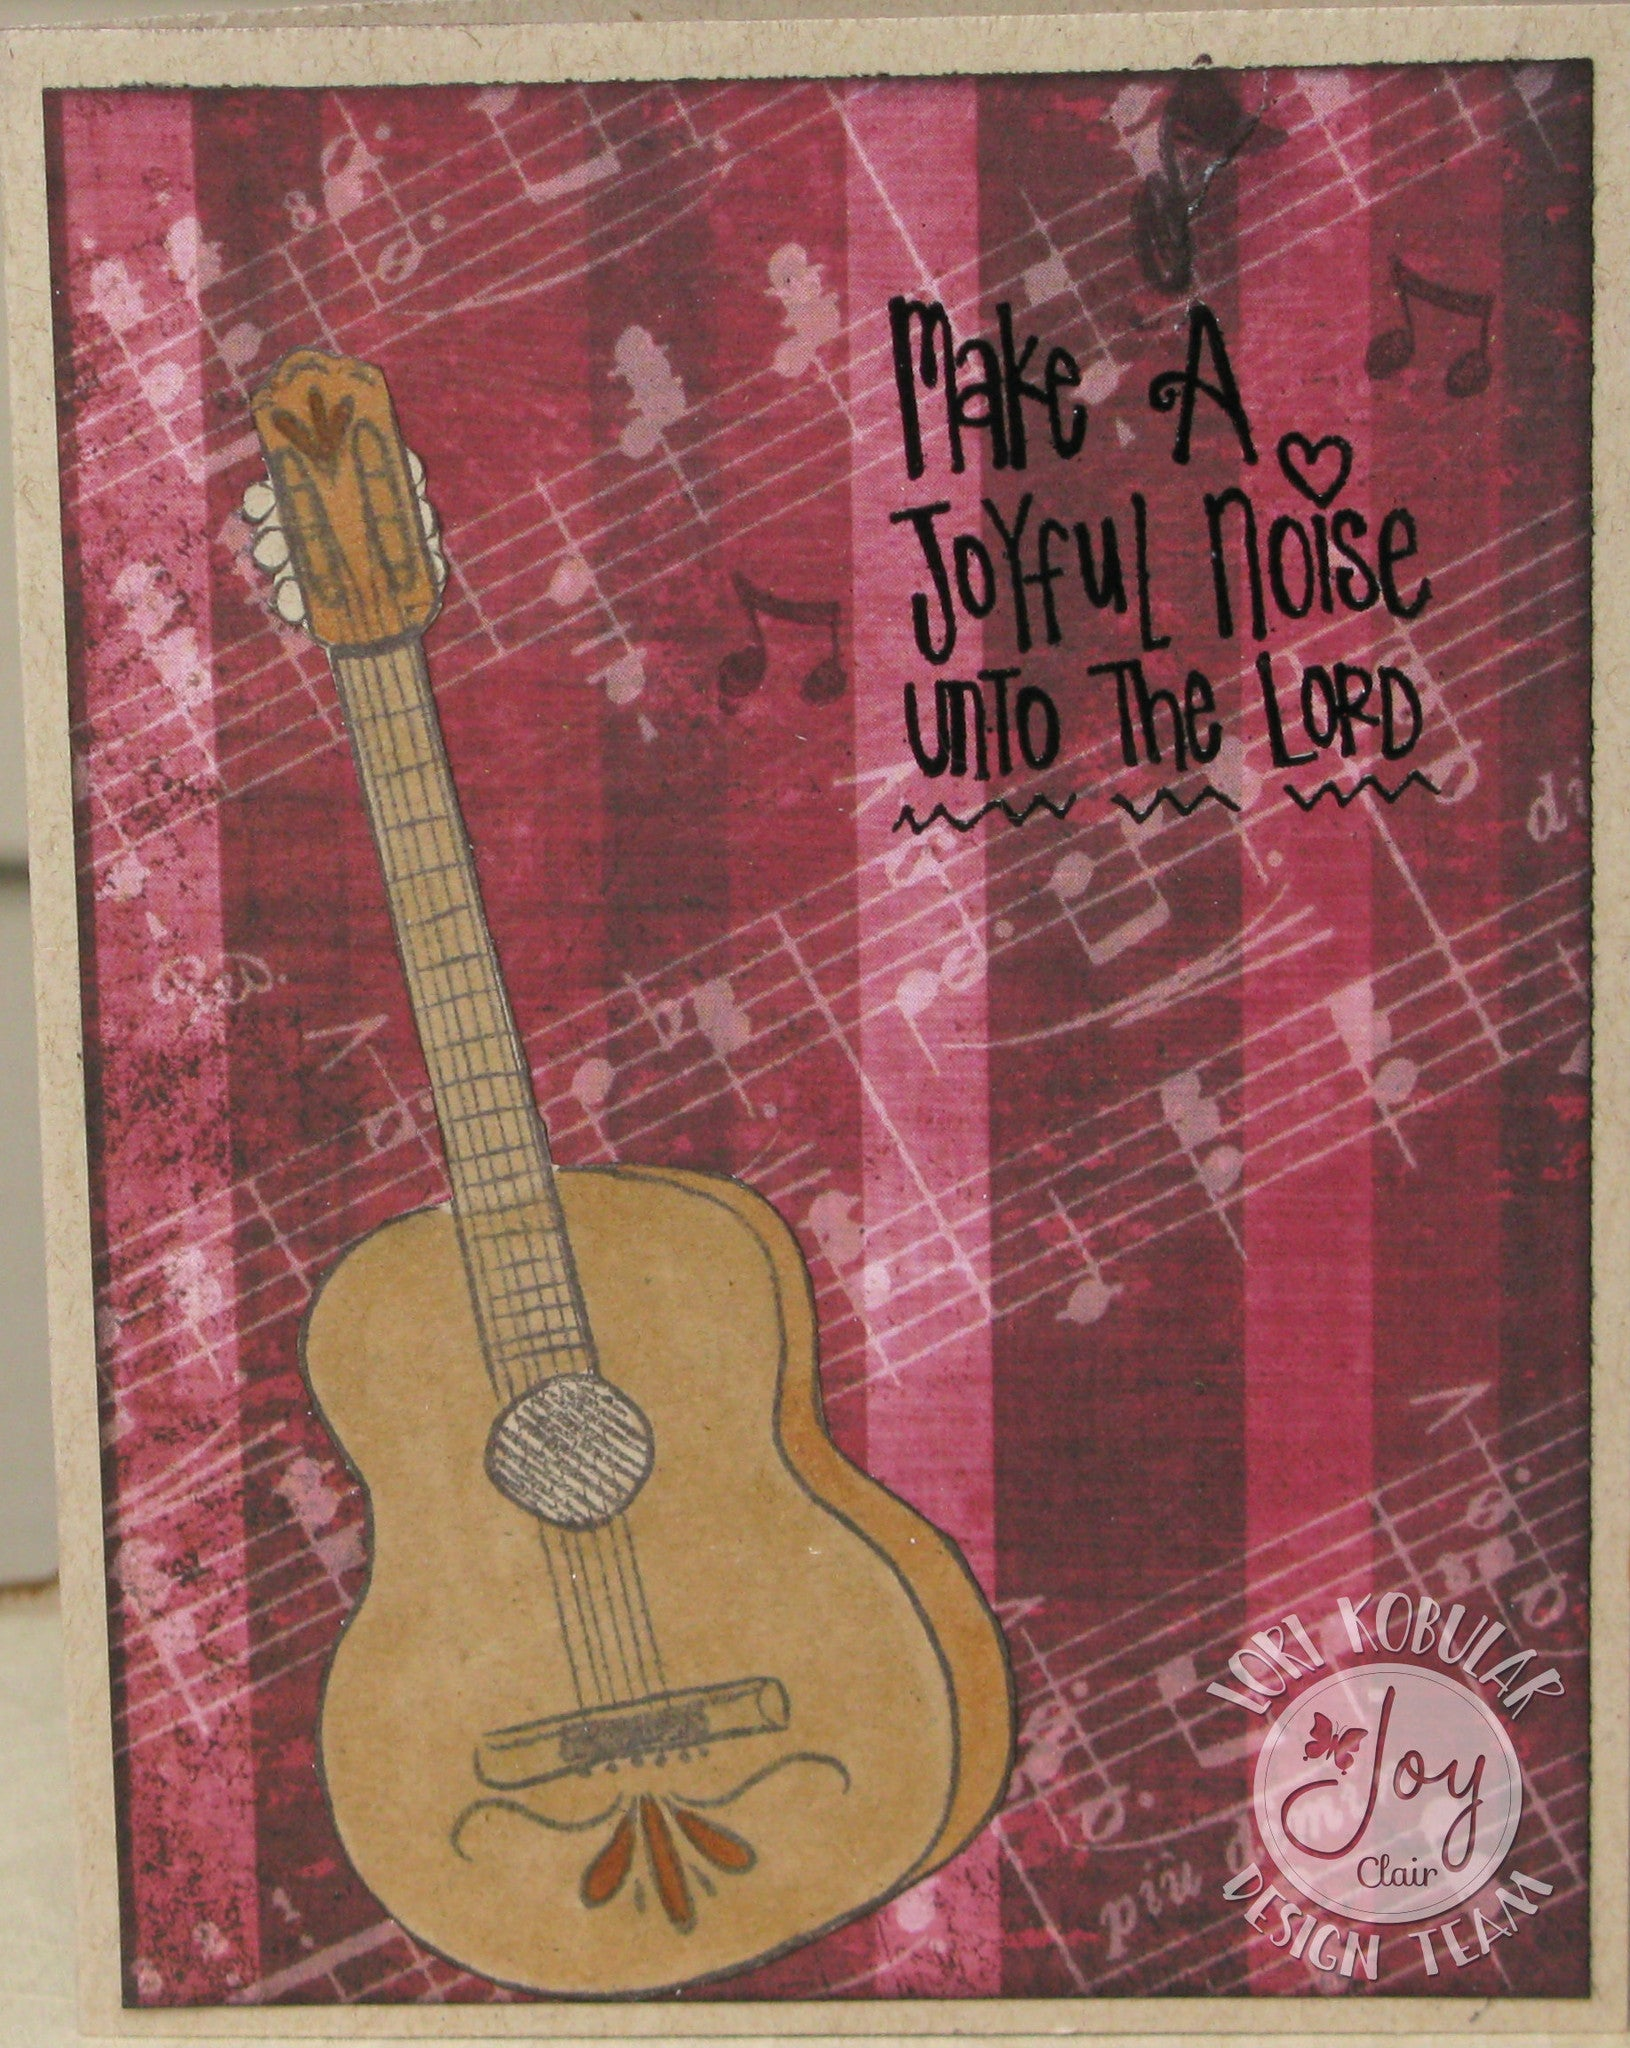 Clear Stamps - Joyful Noise | Bible Journaling Clear Stamps - Joy Clair - 6